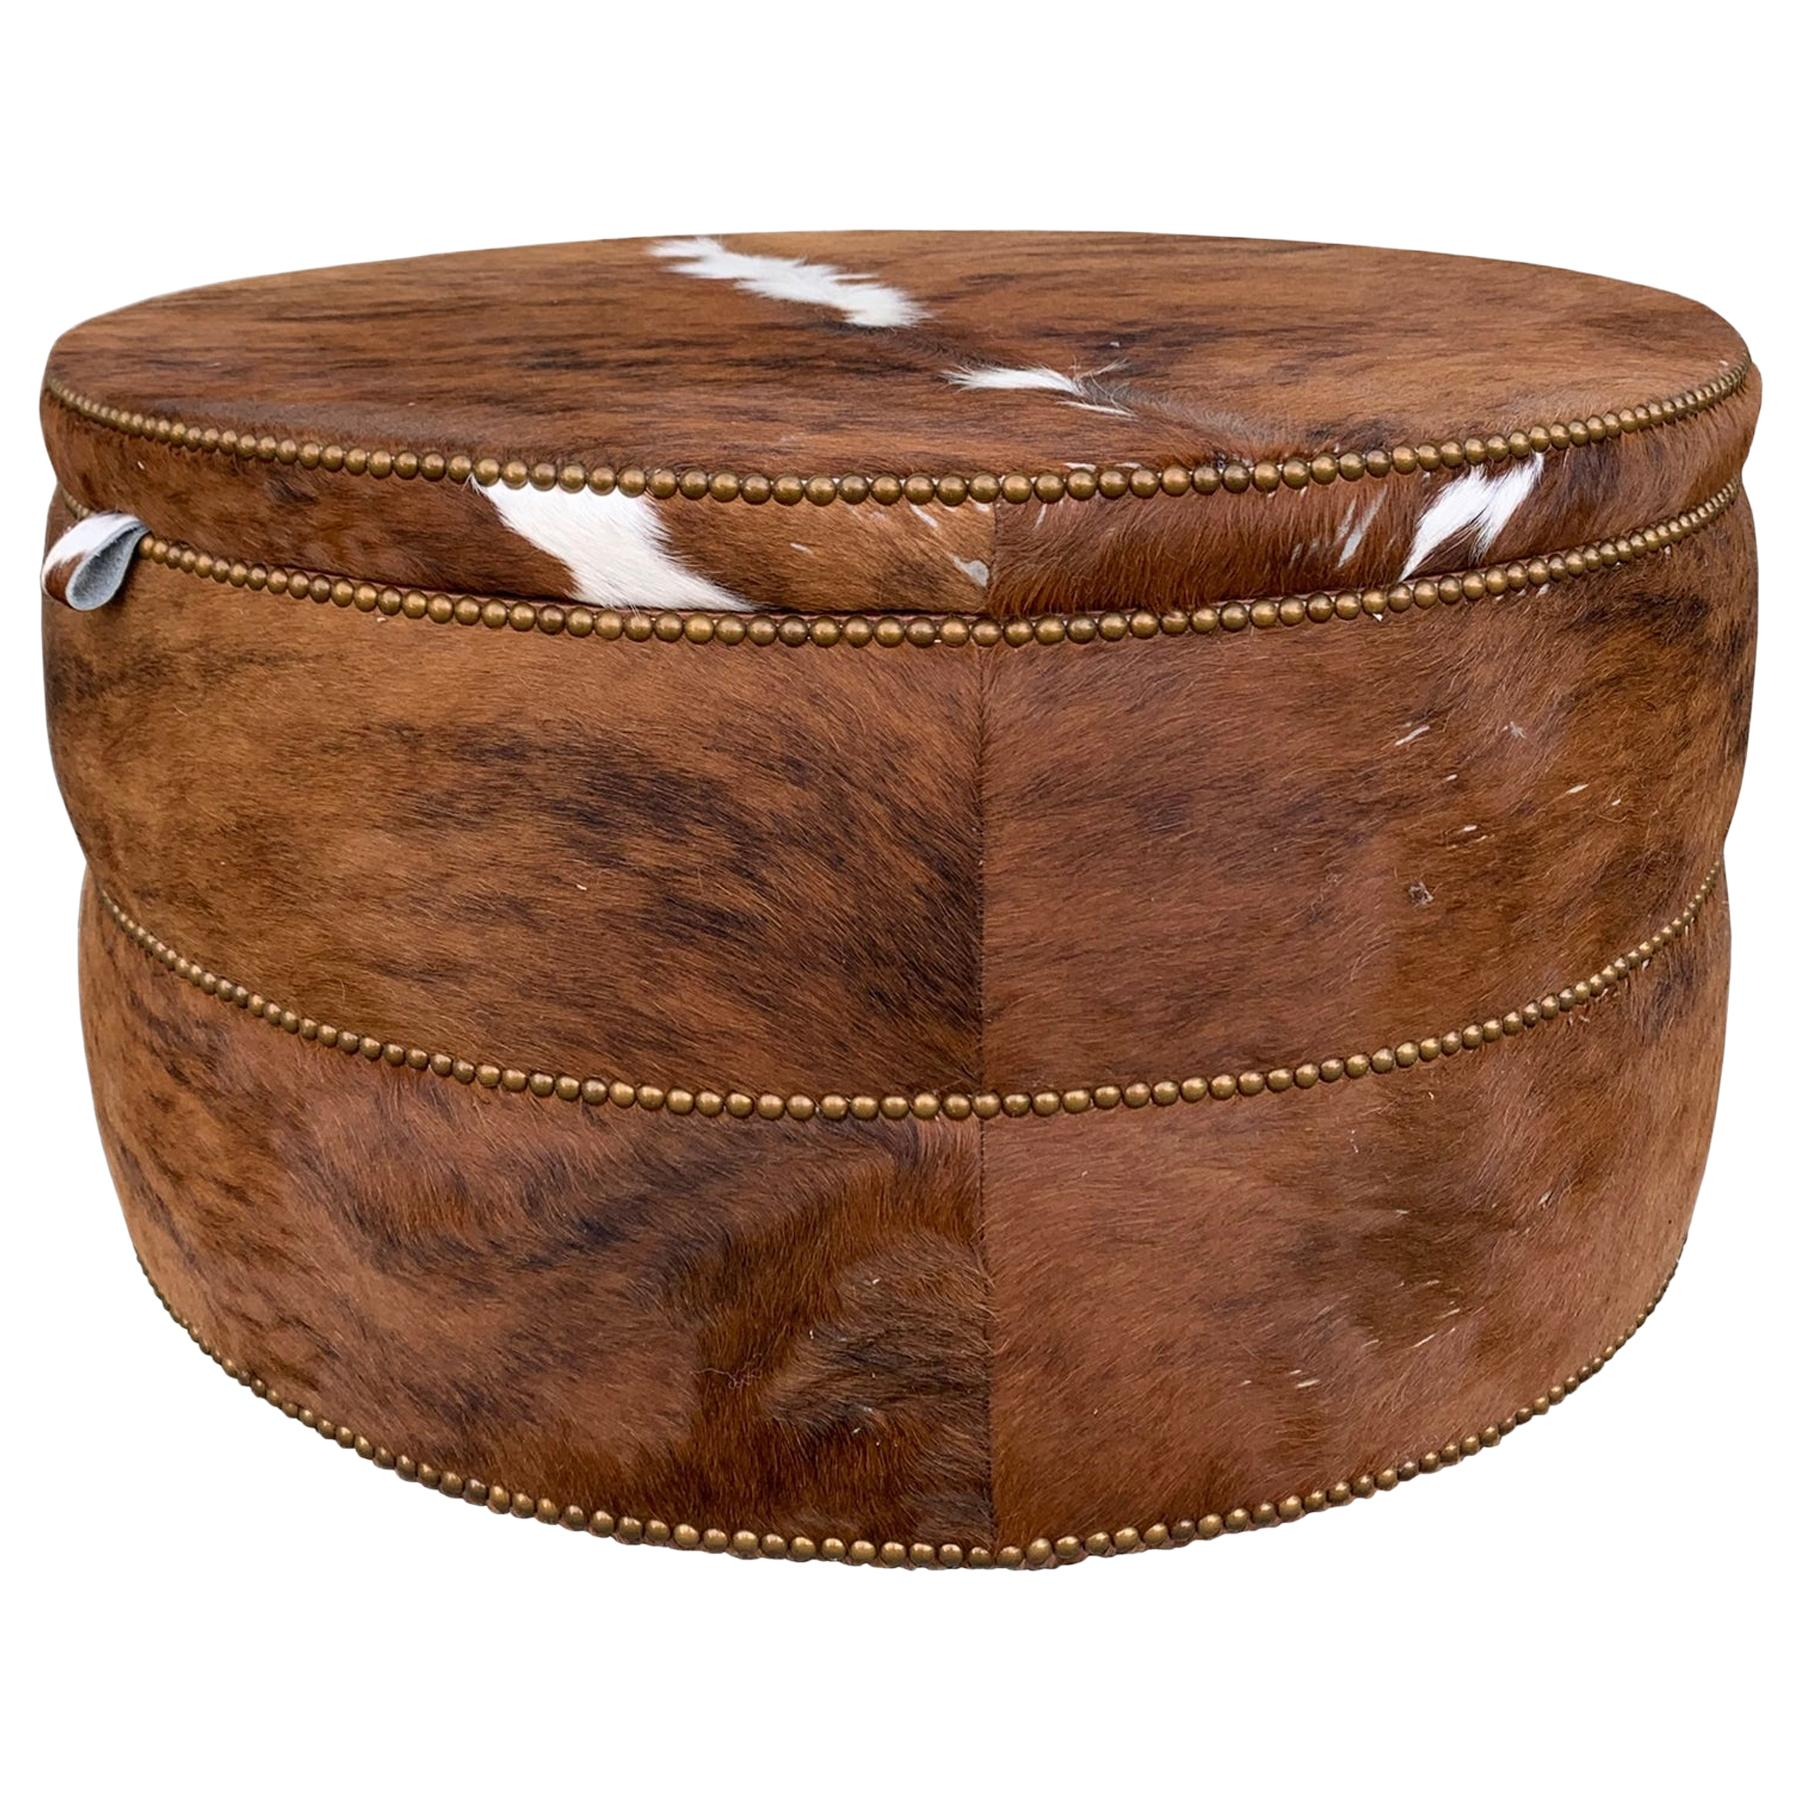 Awe Inspiring Antique And Vintage Ottomans And Poufs 2 848 For Sale At Ncnpc Chair Design For Home Ncnpcorg